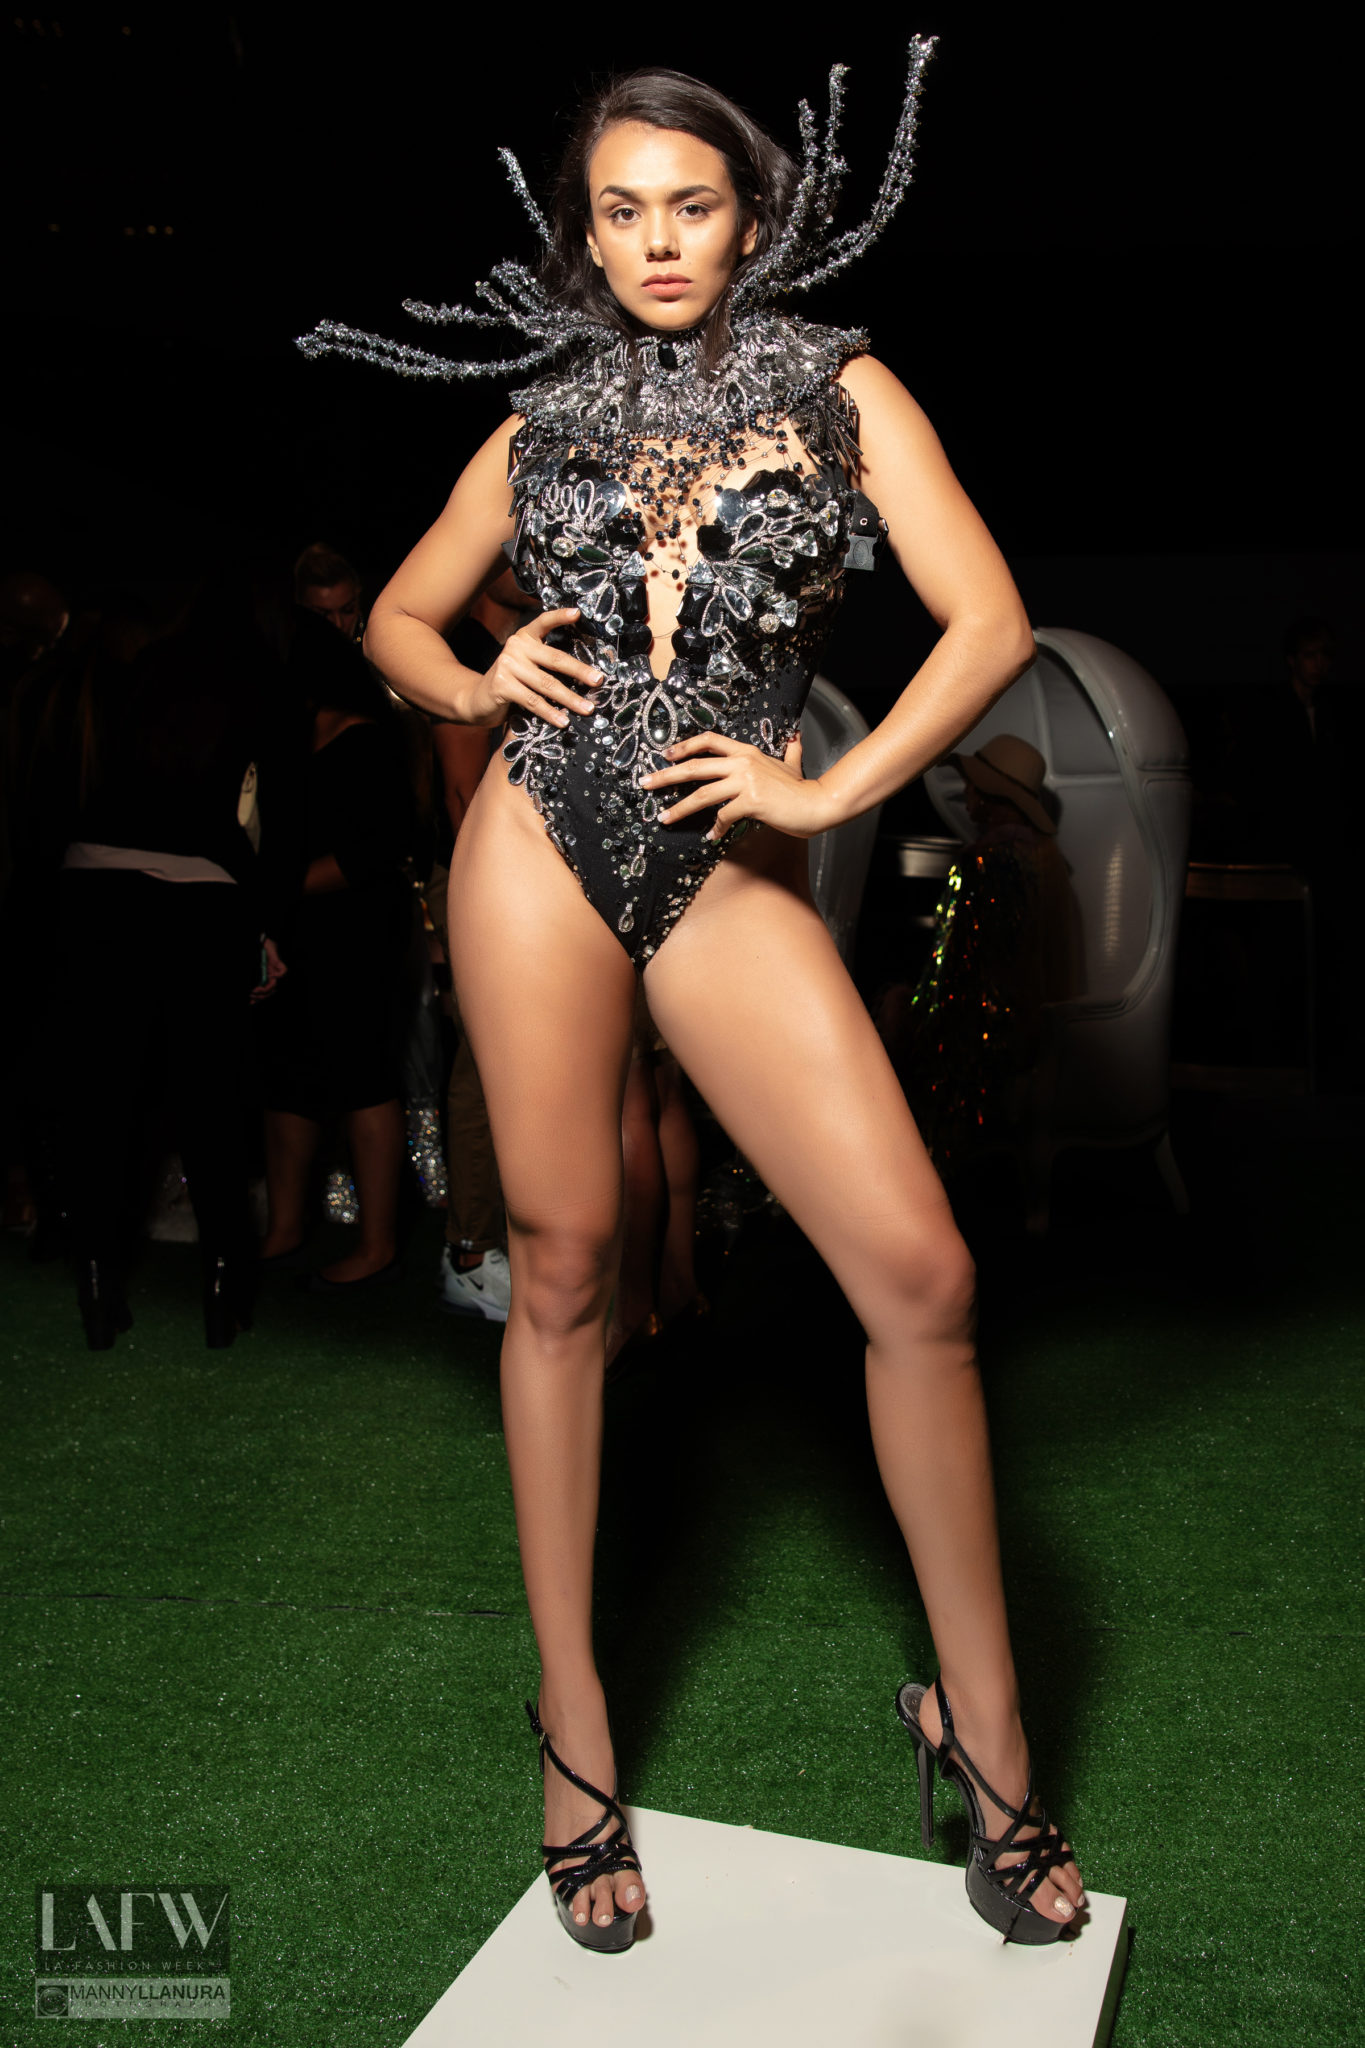 LAFW LA Fashion Week SS19 Rocky Gathercole